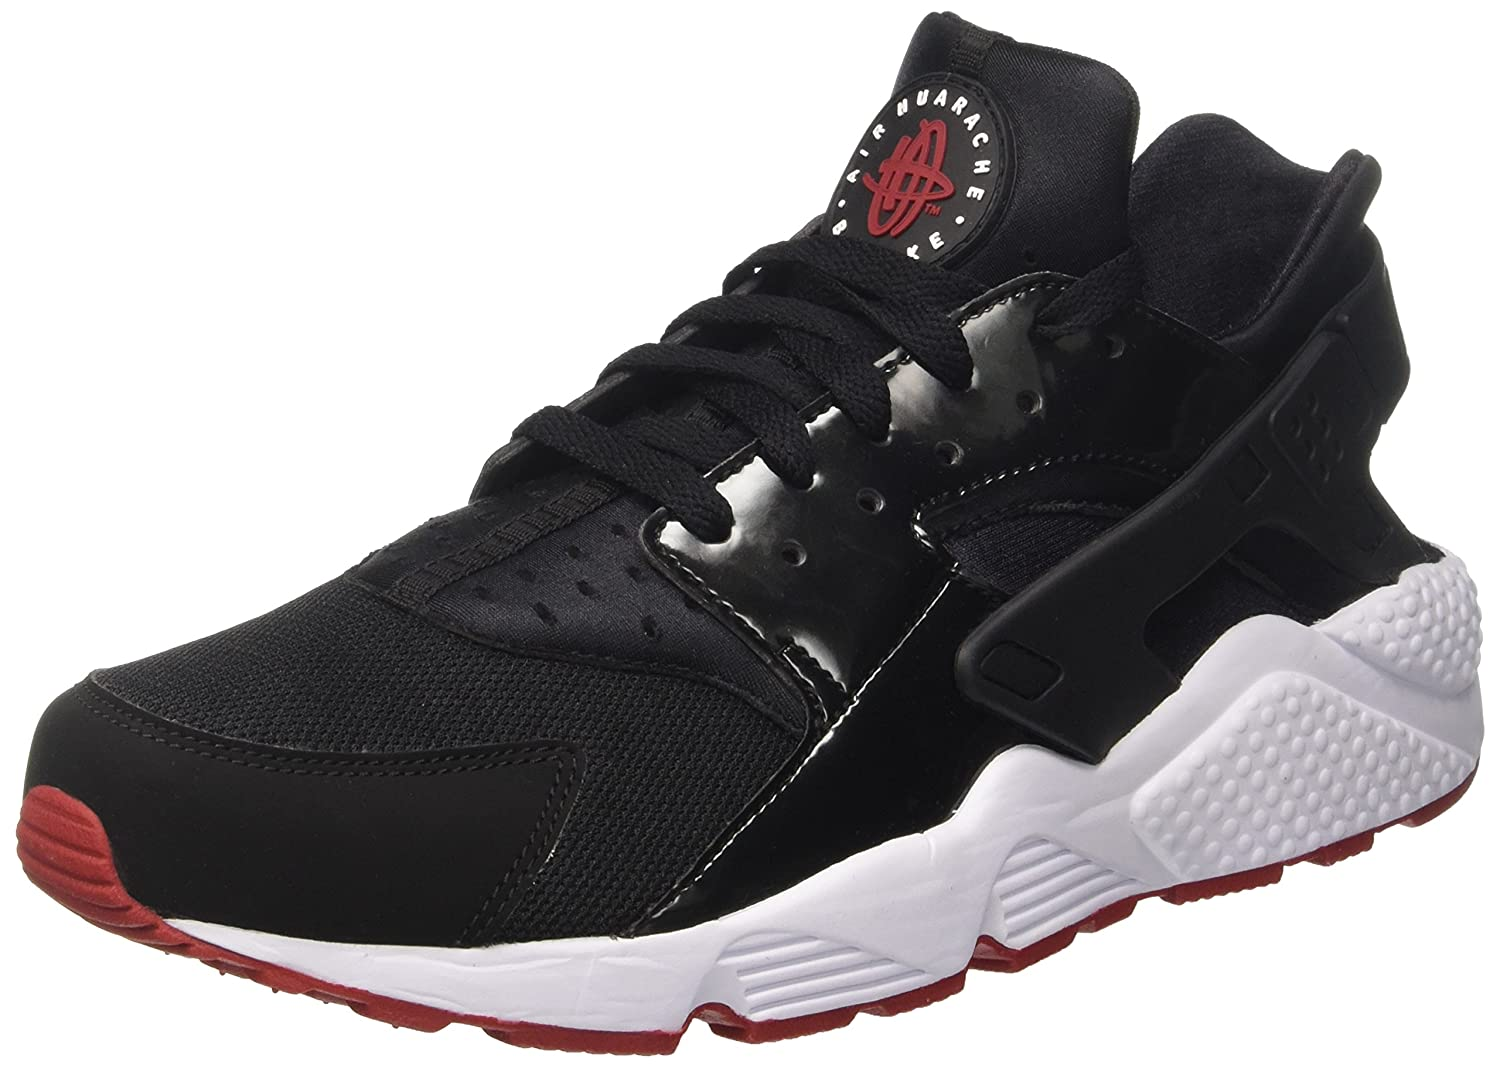 half off 9879f f1cd2 Nike Air Huarache Bred Men Lifestyle Casual Sneakers Black Gym Red - 12   Buy Online at Low Prices in India - Amazon.in